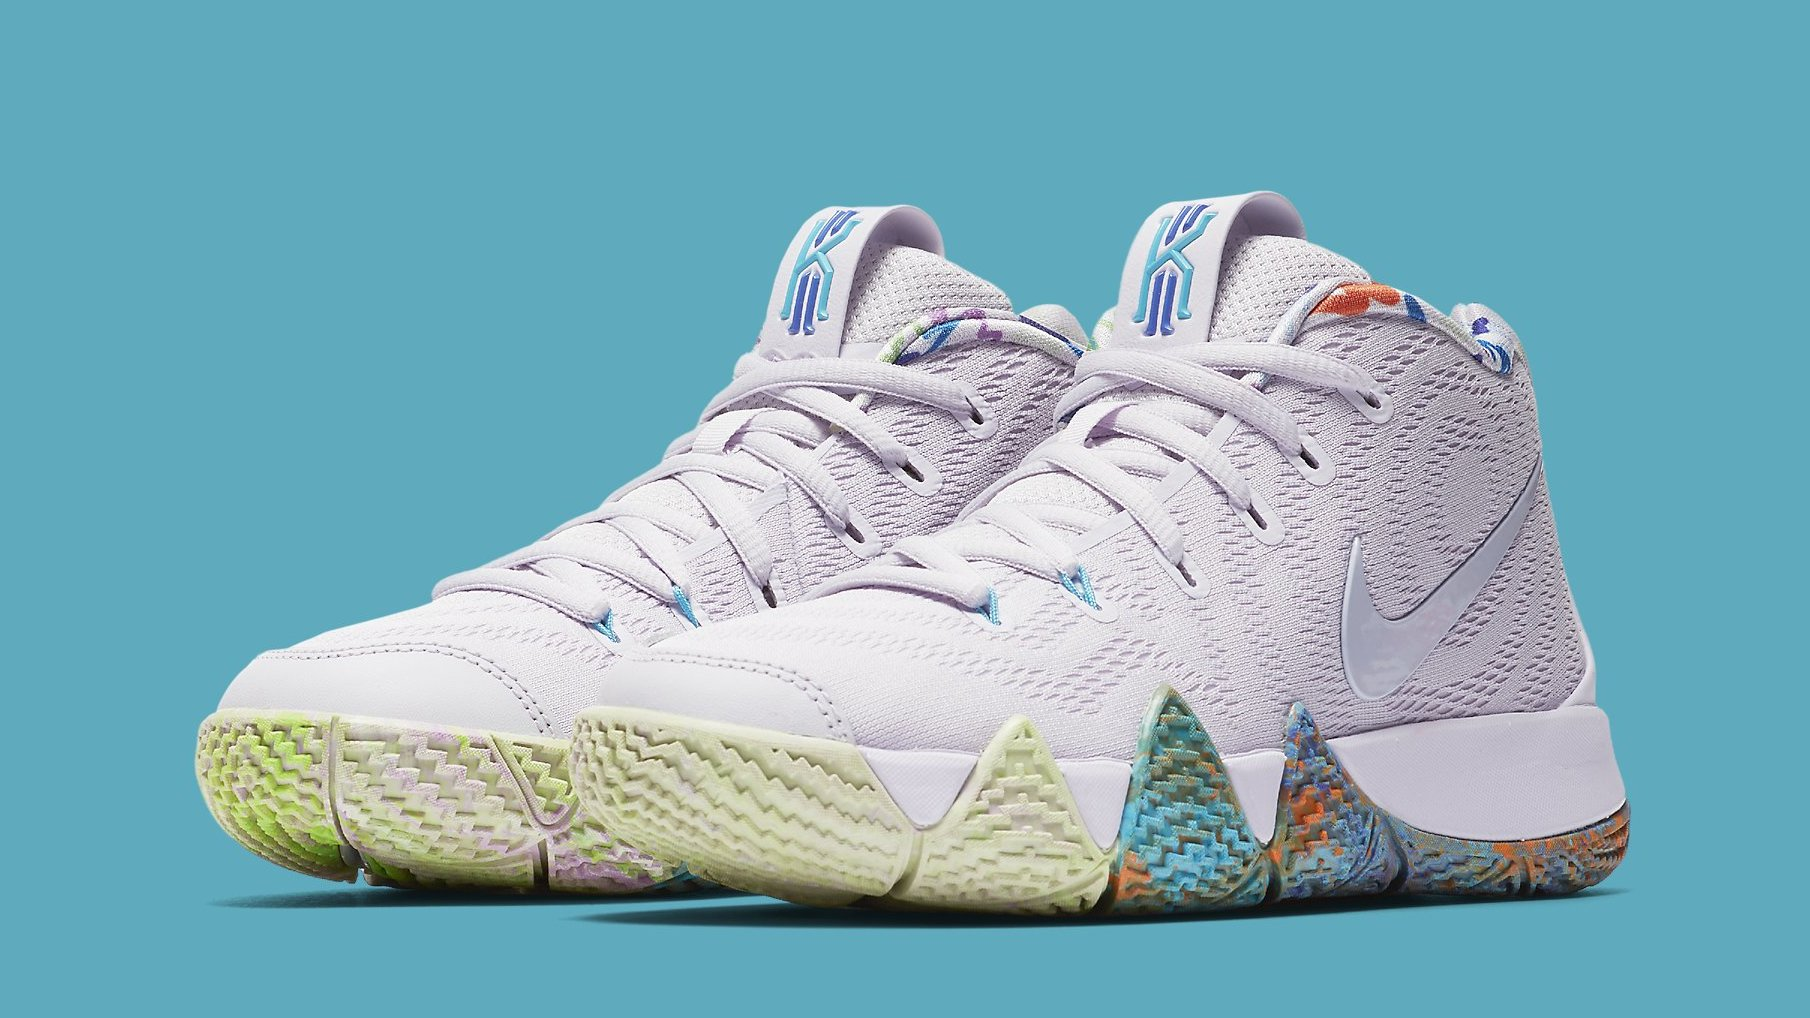 brand new 84642 836fb Nike Kyrie 4  90s  Release Date Aug. 25, 2018 943806-902   Sole Collector